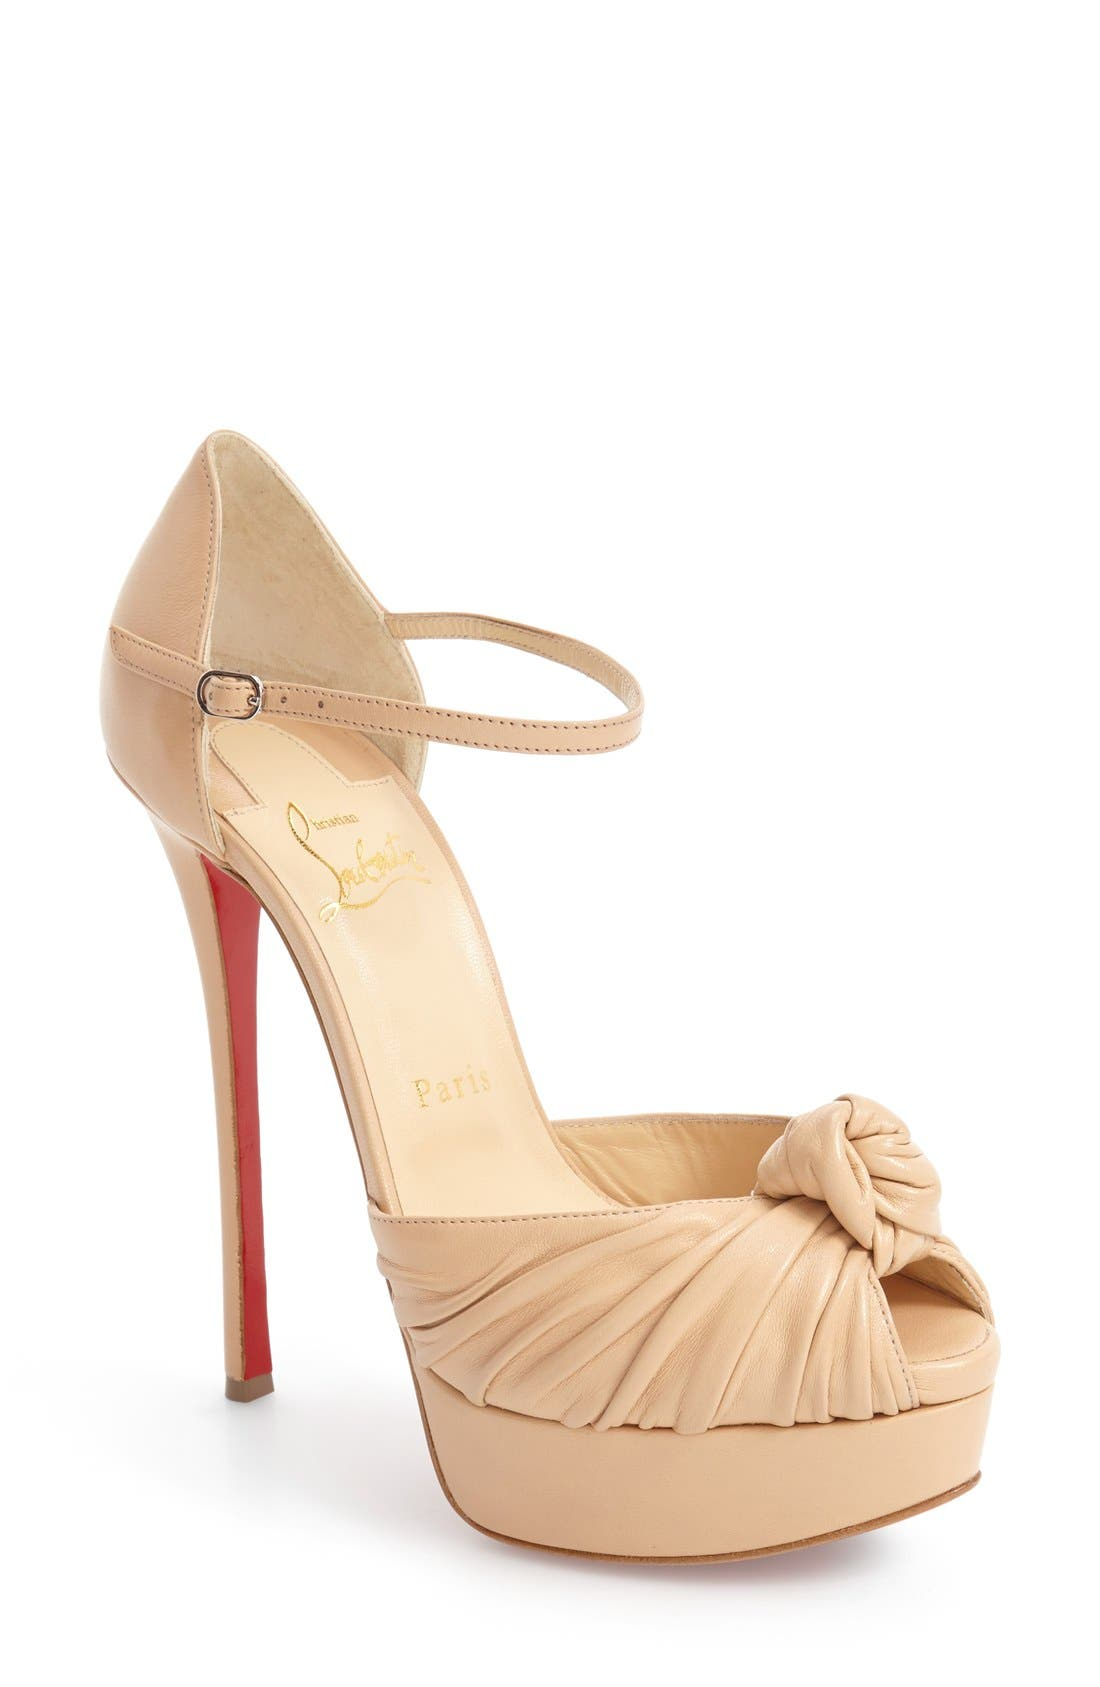 Marchavekel Knot Sandal,                             Main thumbnail 1, color,                             Nude Leather